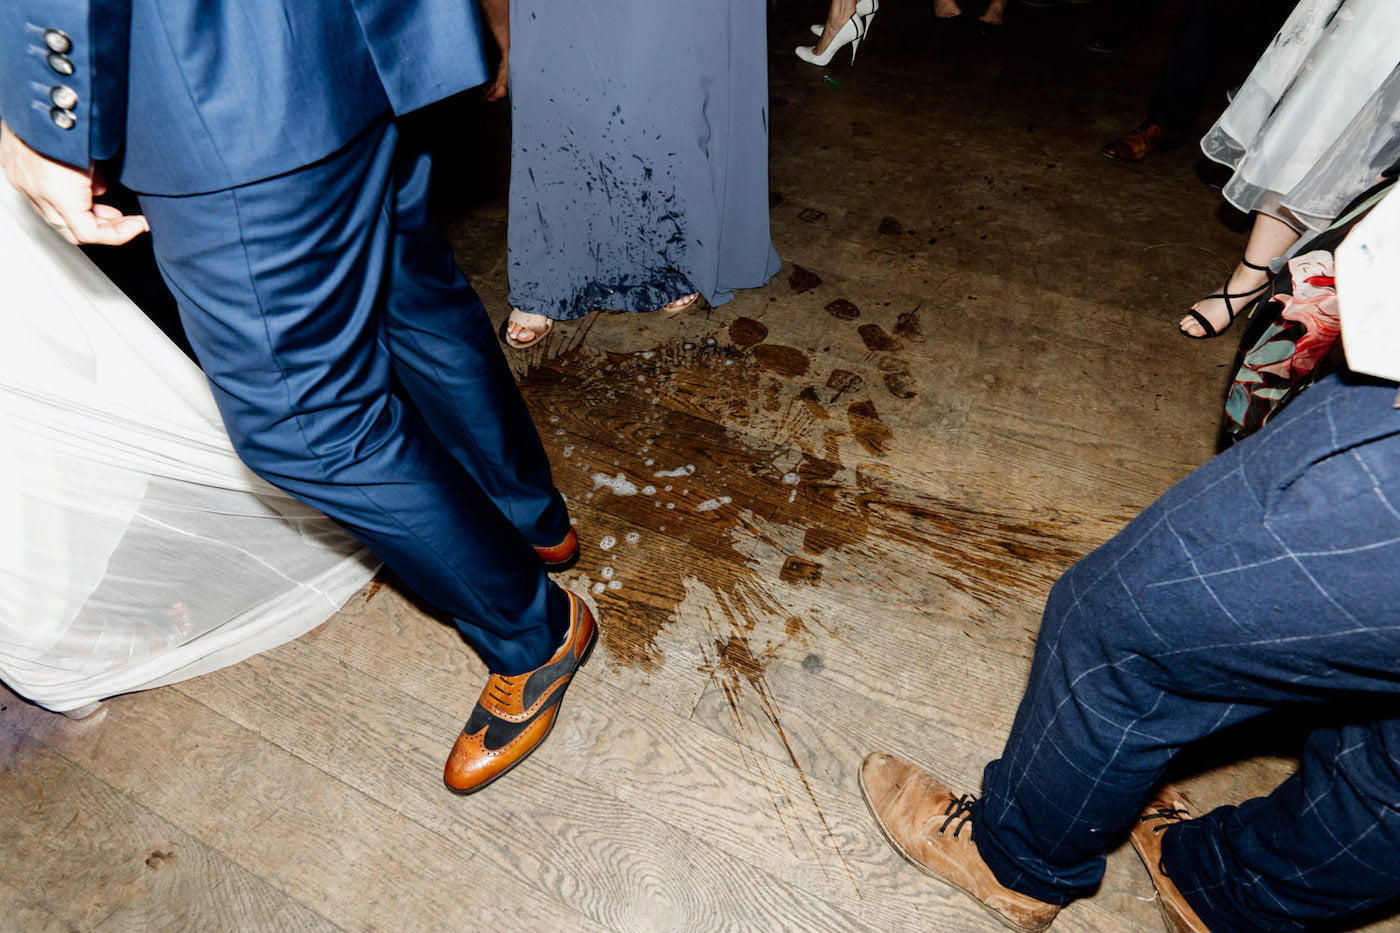 smashed glass on dance floor at wedding